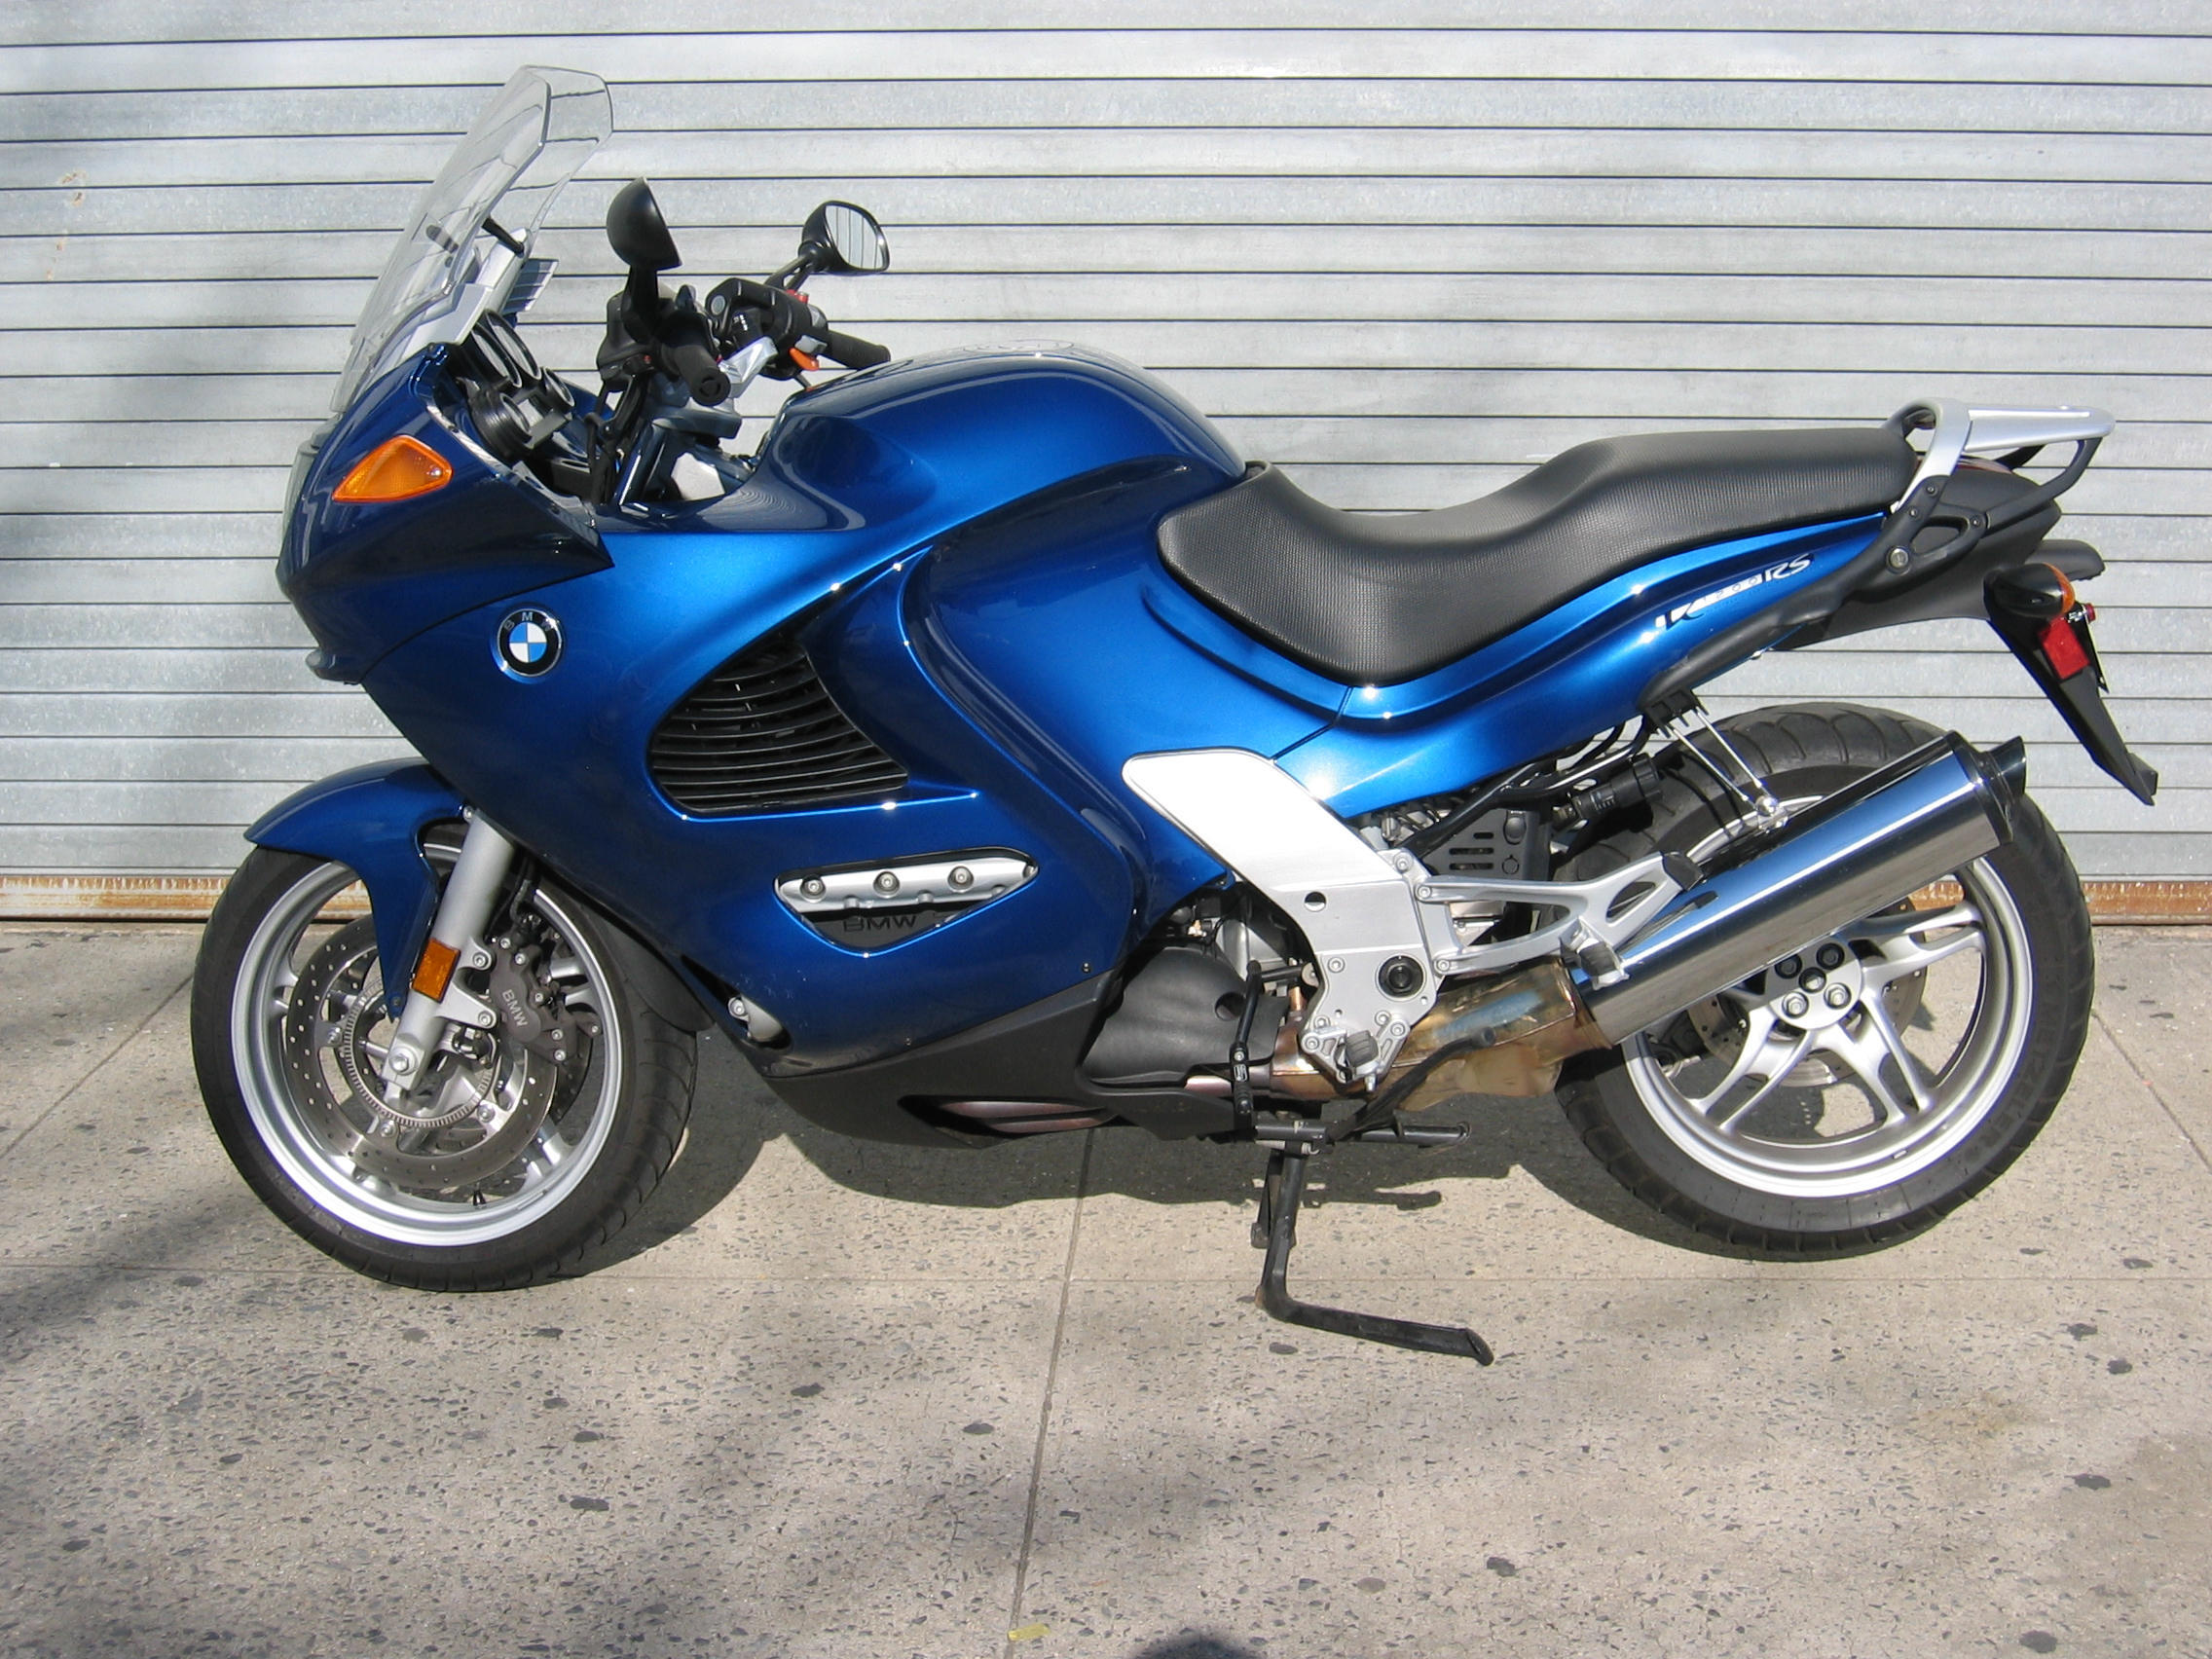 BMW K1200RS 2002 images #7654